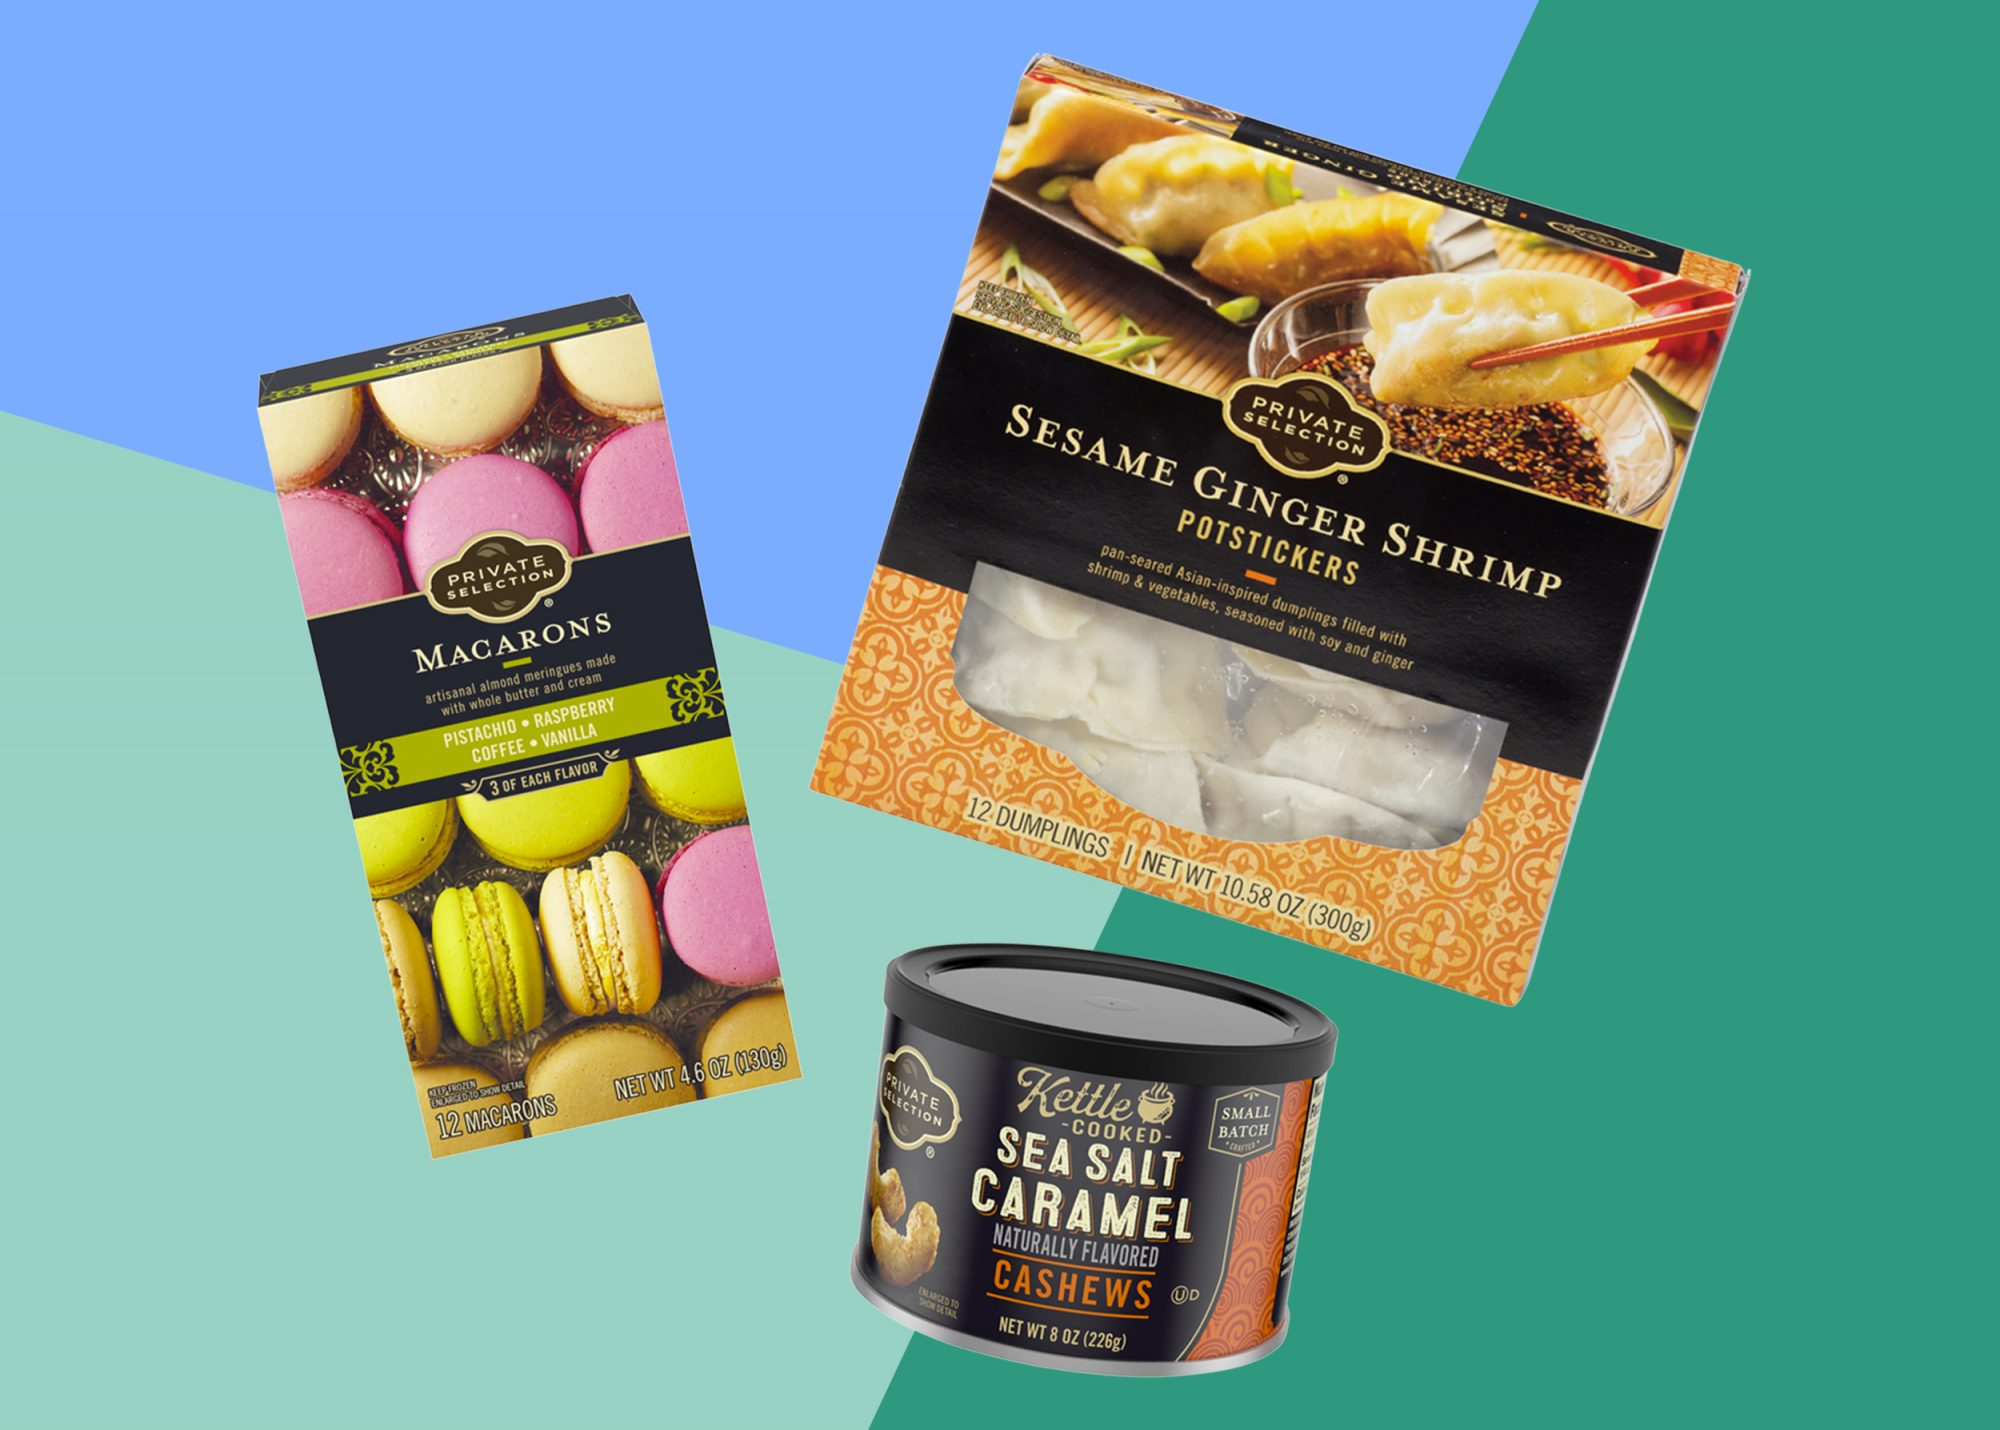 We Tried 47 Kroger Store-Brand Products — These Are the Best